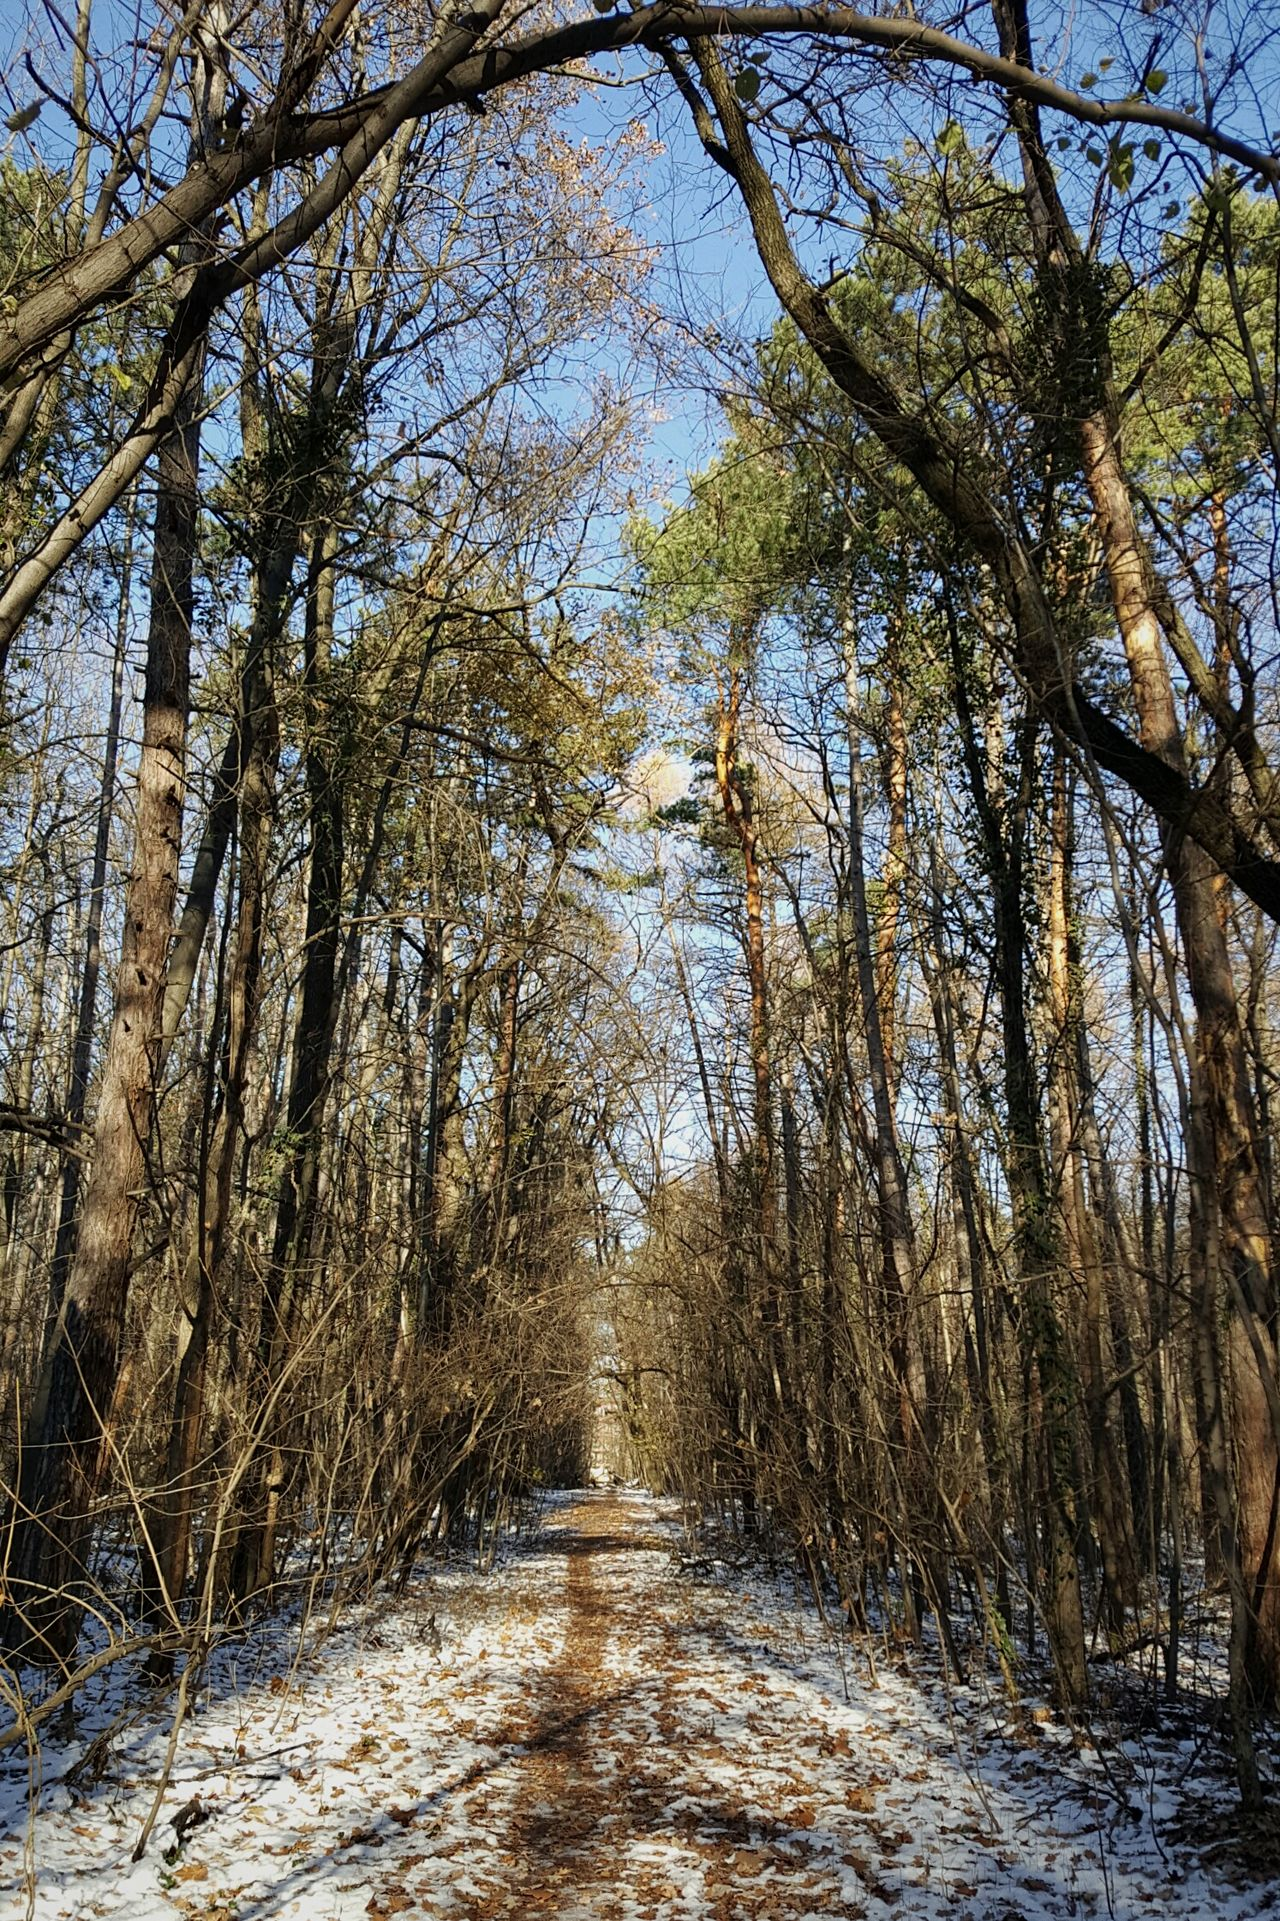 The road ahead Nature Tranquility Outdoors Beauty In Nature Cold Temperature Snow Scenics Early Winter Walk In The Park Walk In The Woods First Eyeem Photo Clear Air Cold Weather Forest Woods In The Park Pathway Pathway In The Forest Path In Nature Trees And Nature